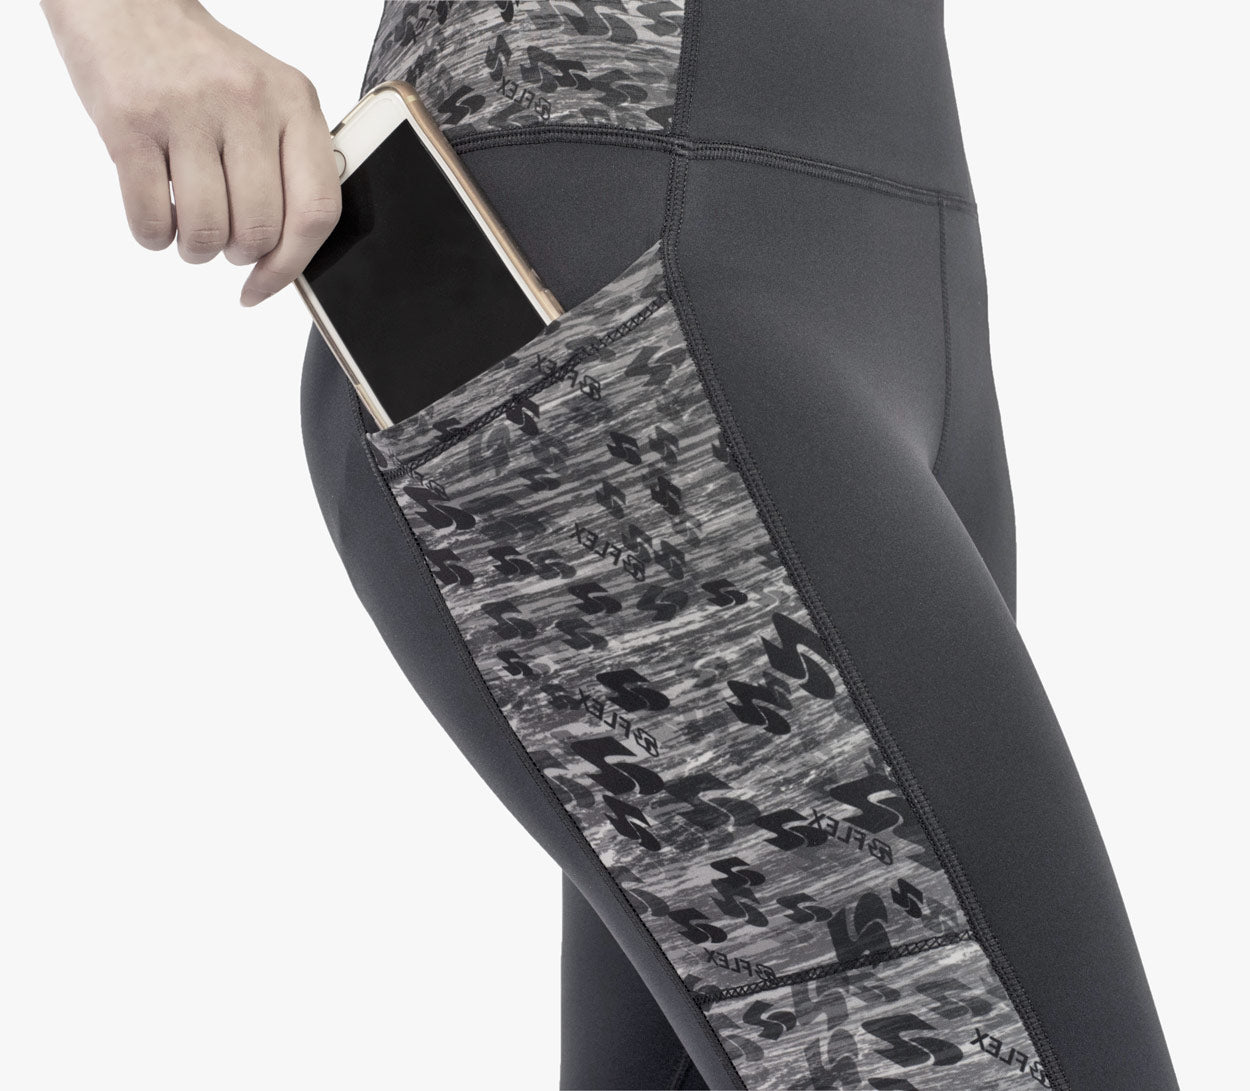 aflex ombre leggings with side pockets